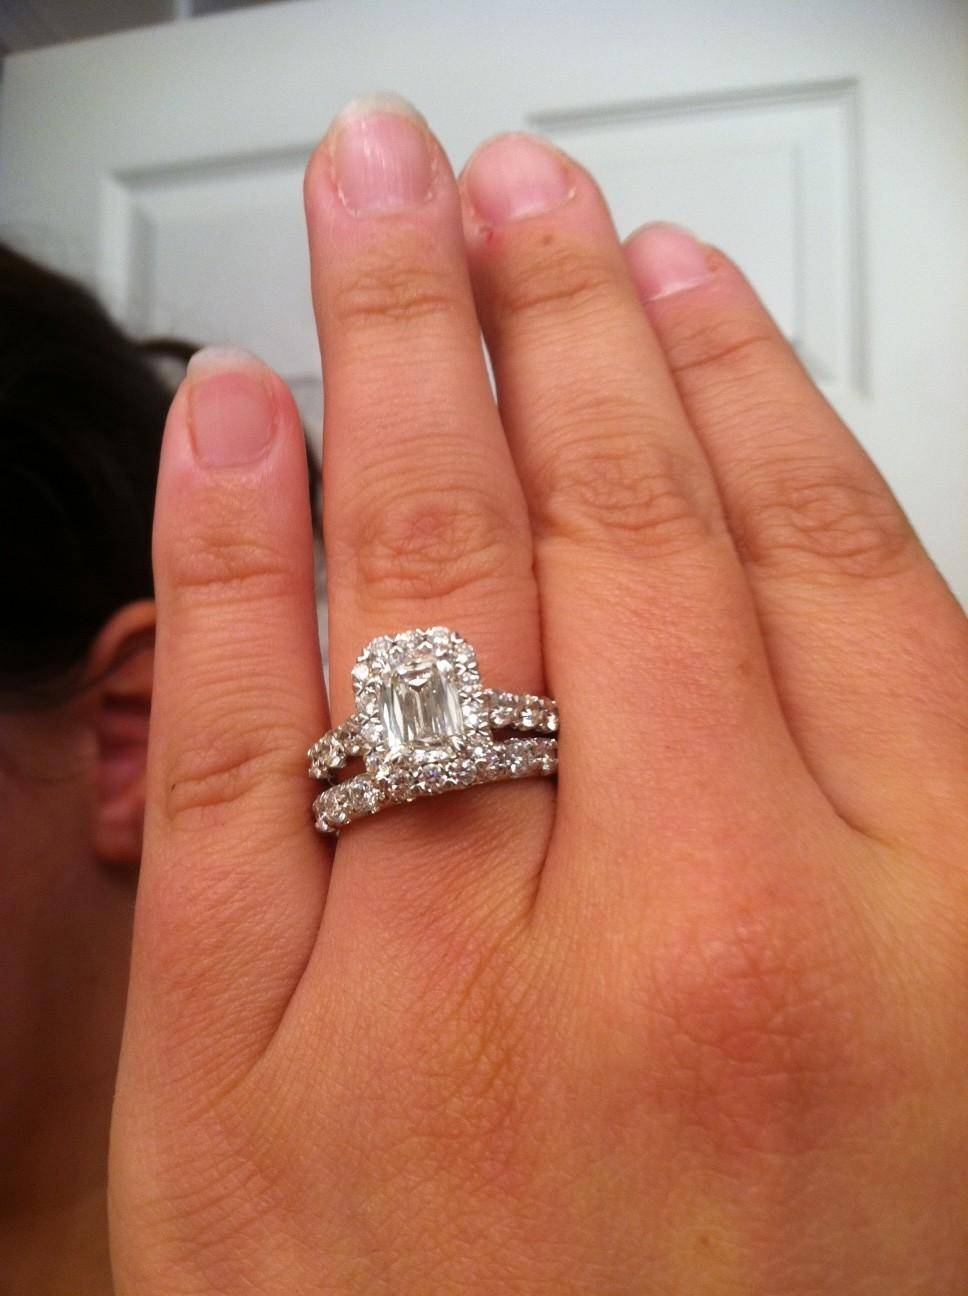 Engagement Rings : Beautiful Engagement Ring Costco Costco Regarding Costco Princess Cut Engagement Rings (View 4 of 15)